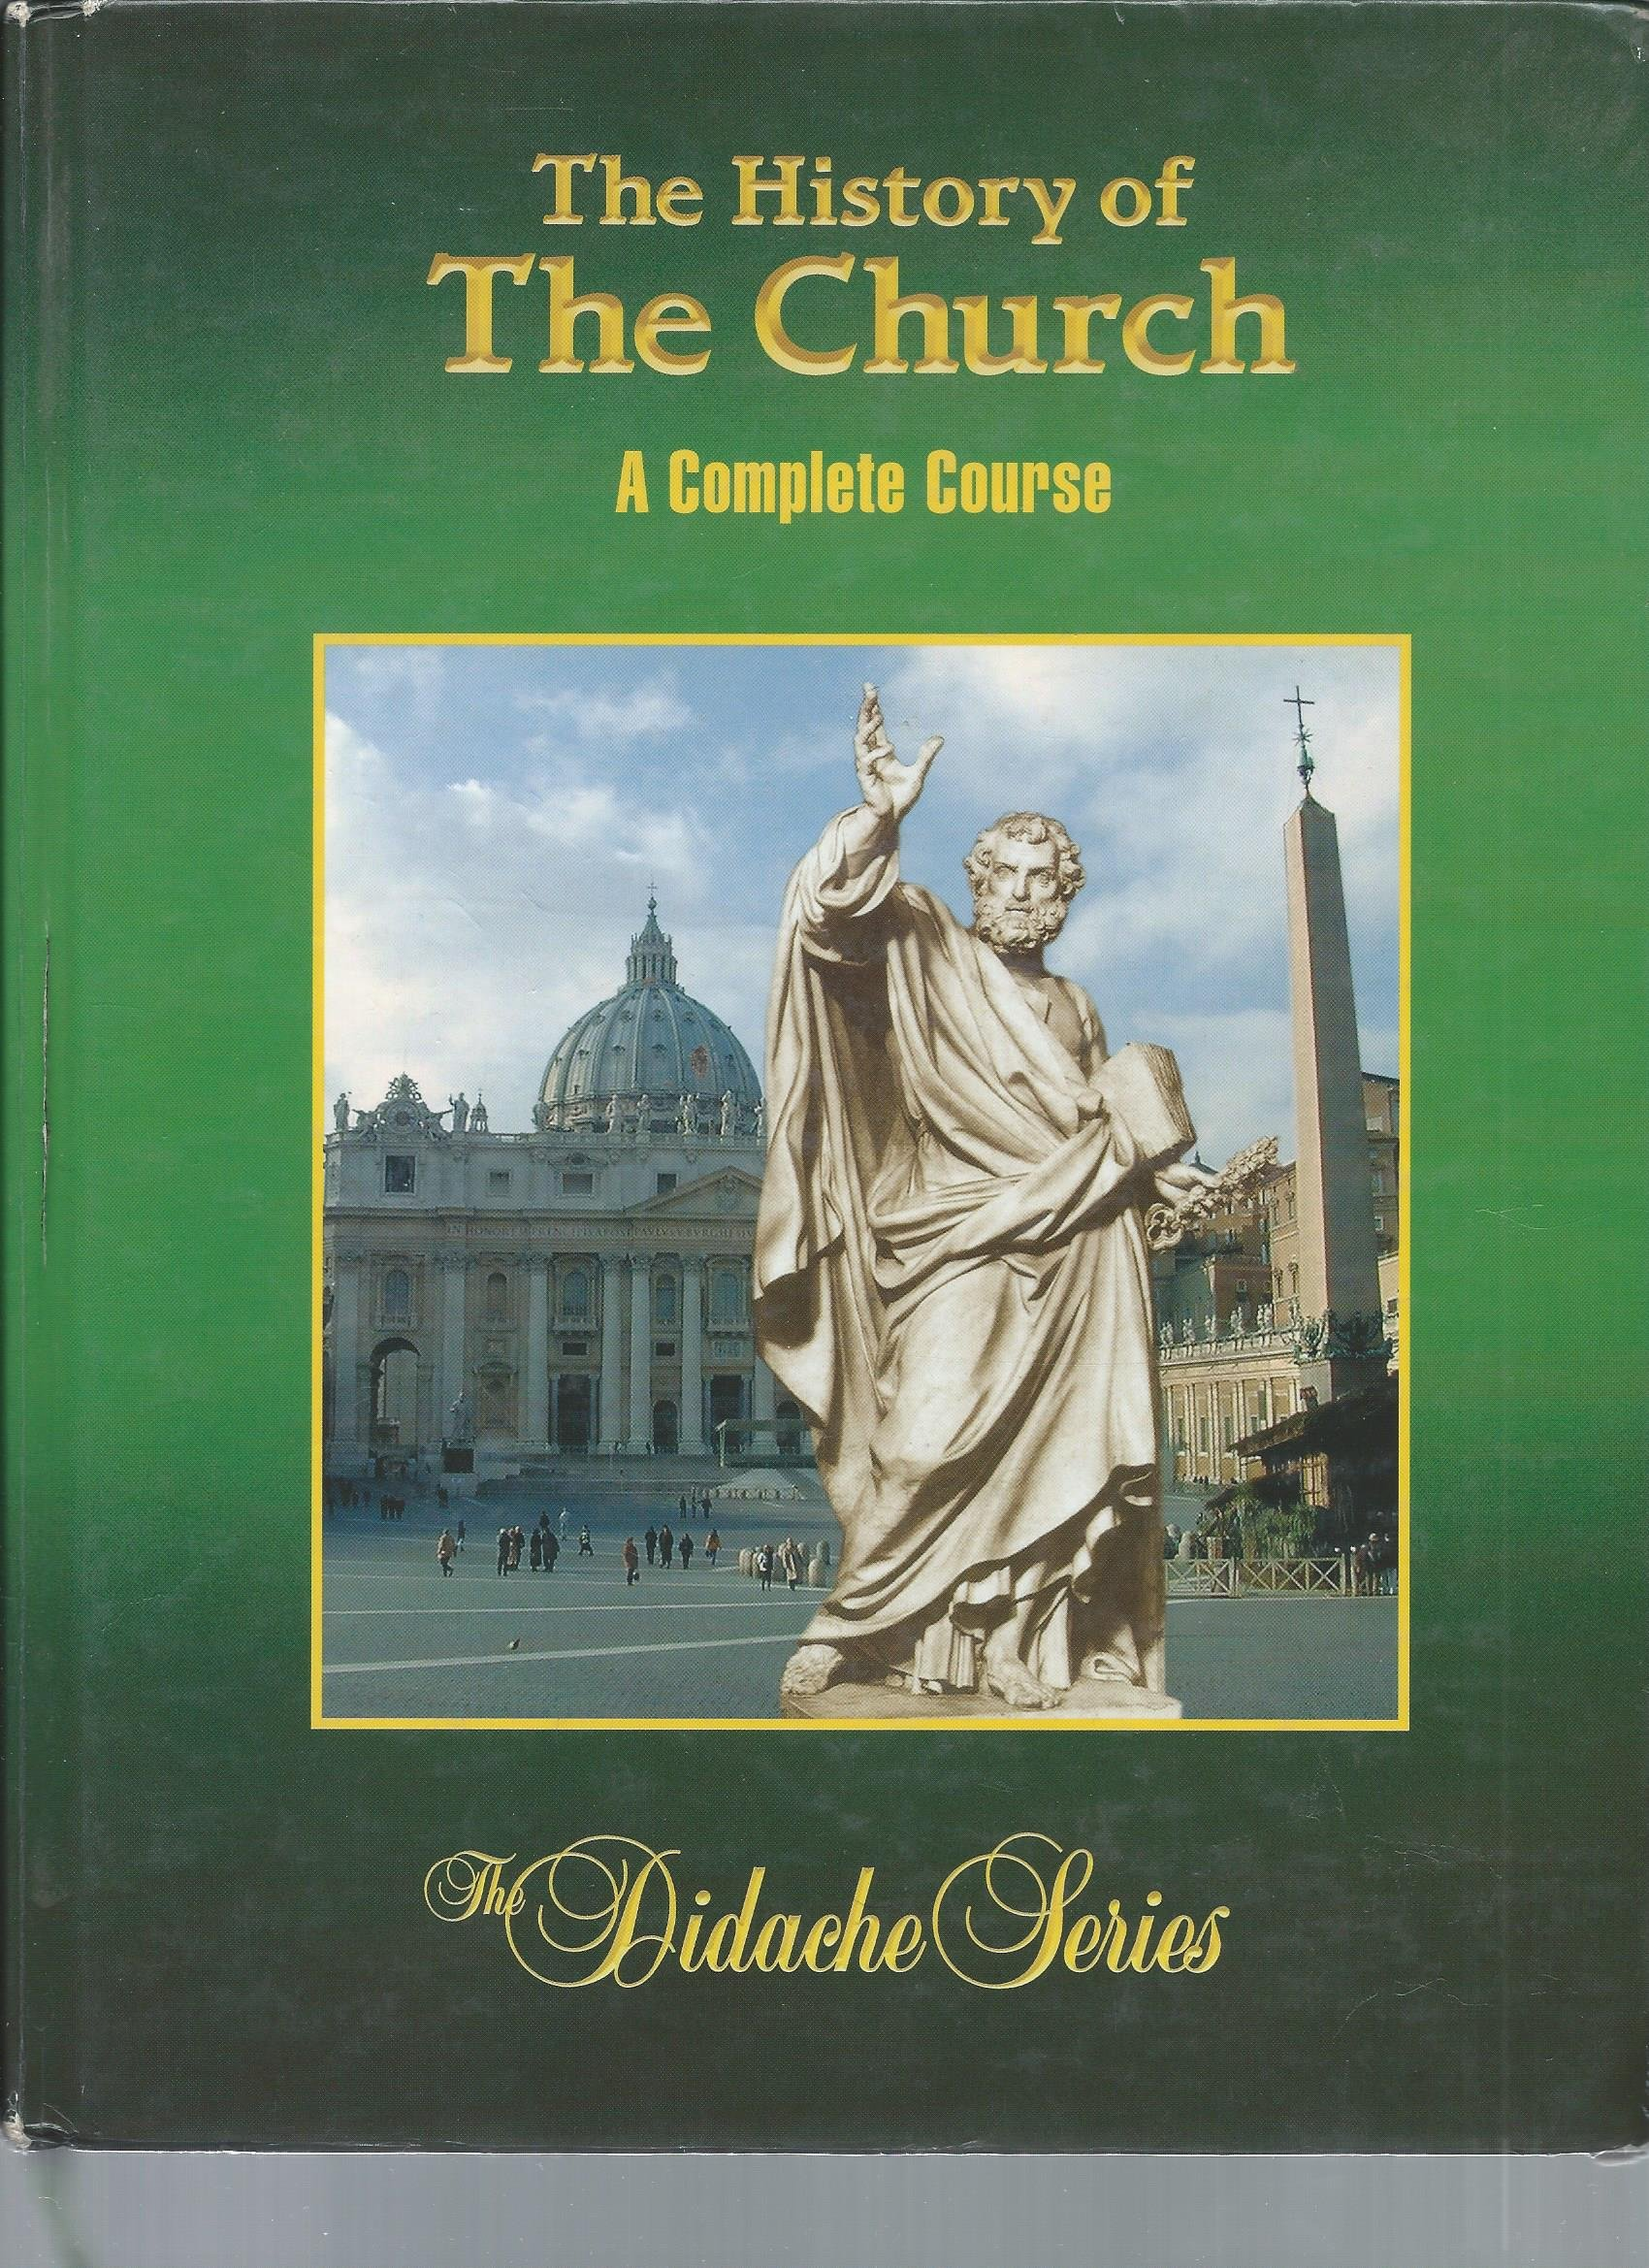 The History of the Church. A Complete Course. First Edition [Didache Series]:  Rev. Peter V. Armenio: 9781890177461: Amazon.com: Books